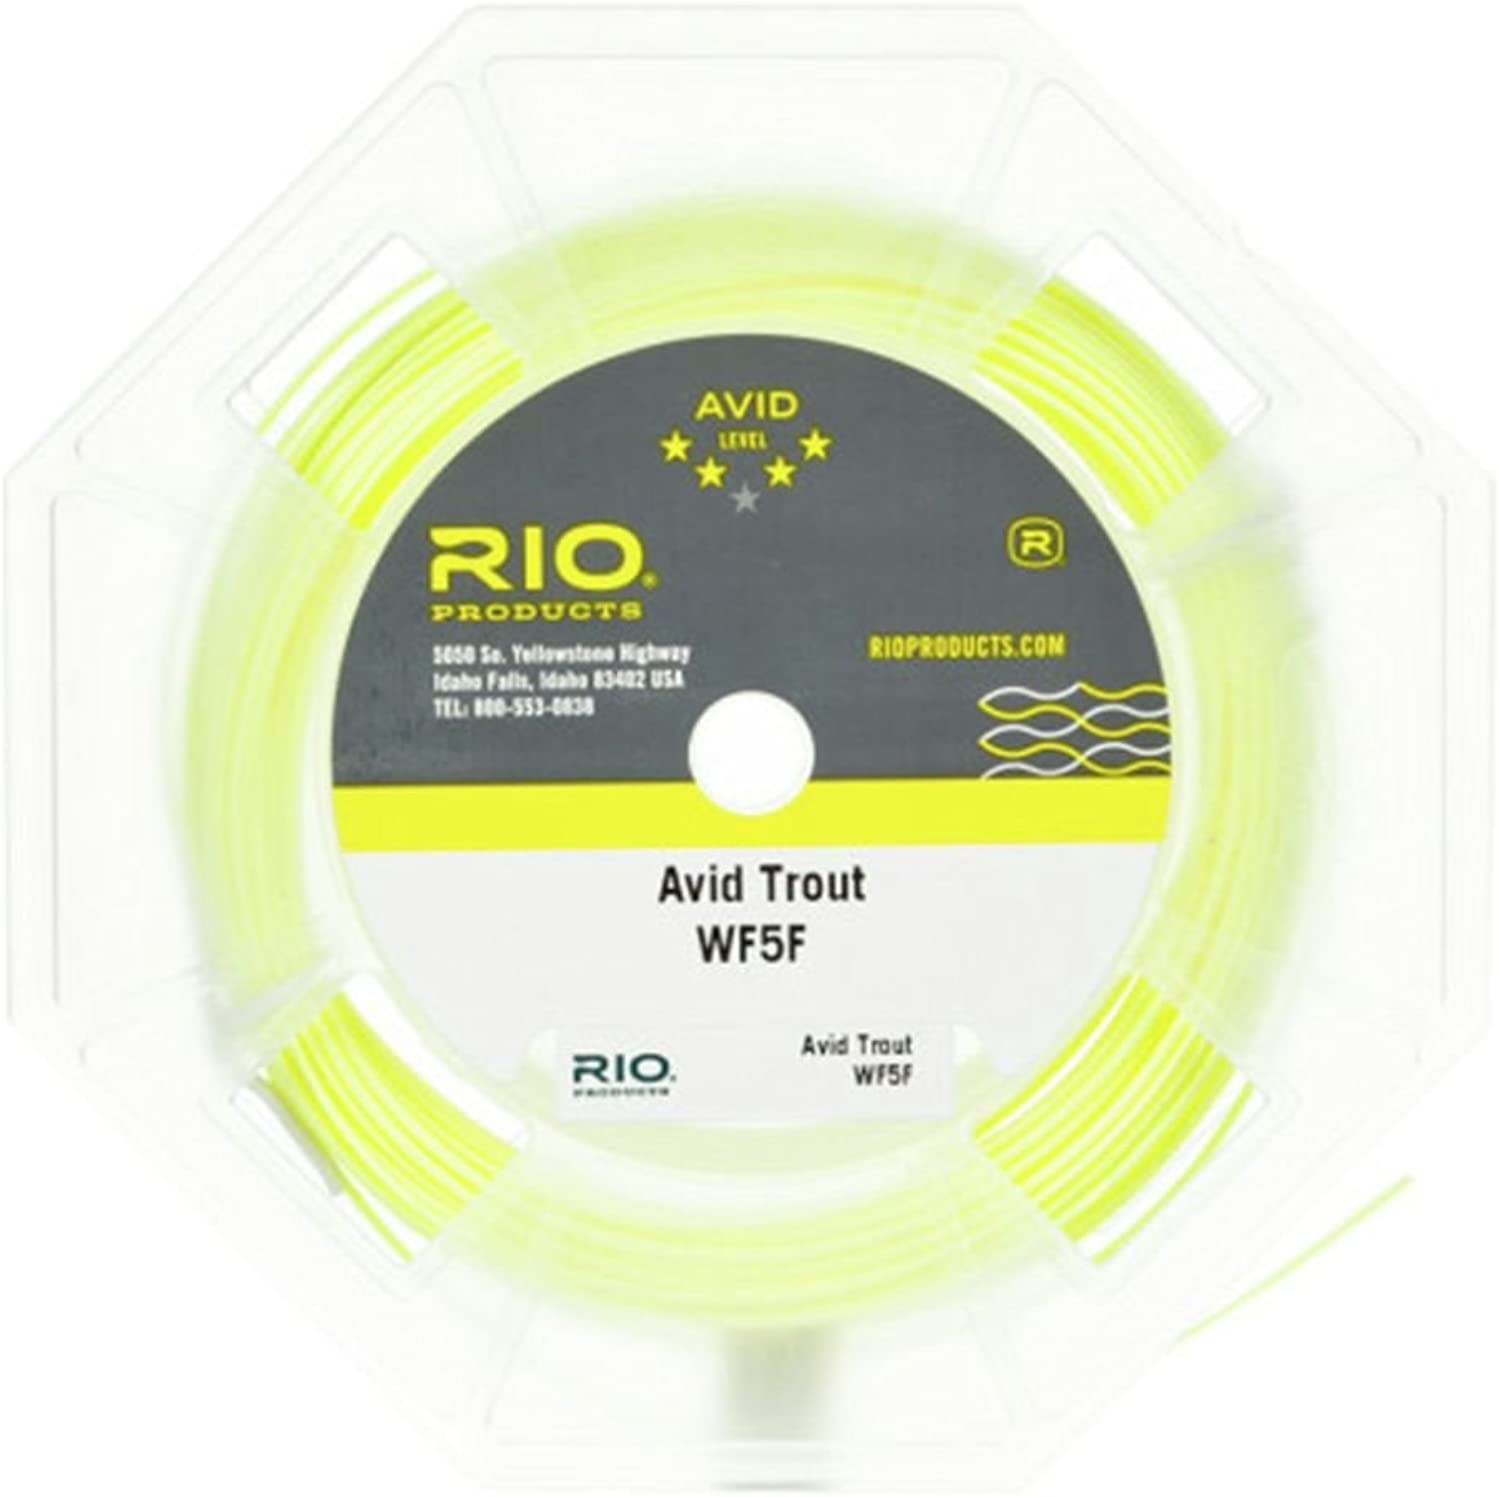 RIO Brands Unisex Avid Trout Wf7F Pale Yellow 6-20132, Pale-Yellow, WF7F 90ft